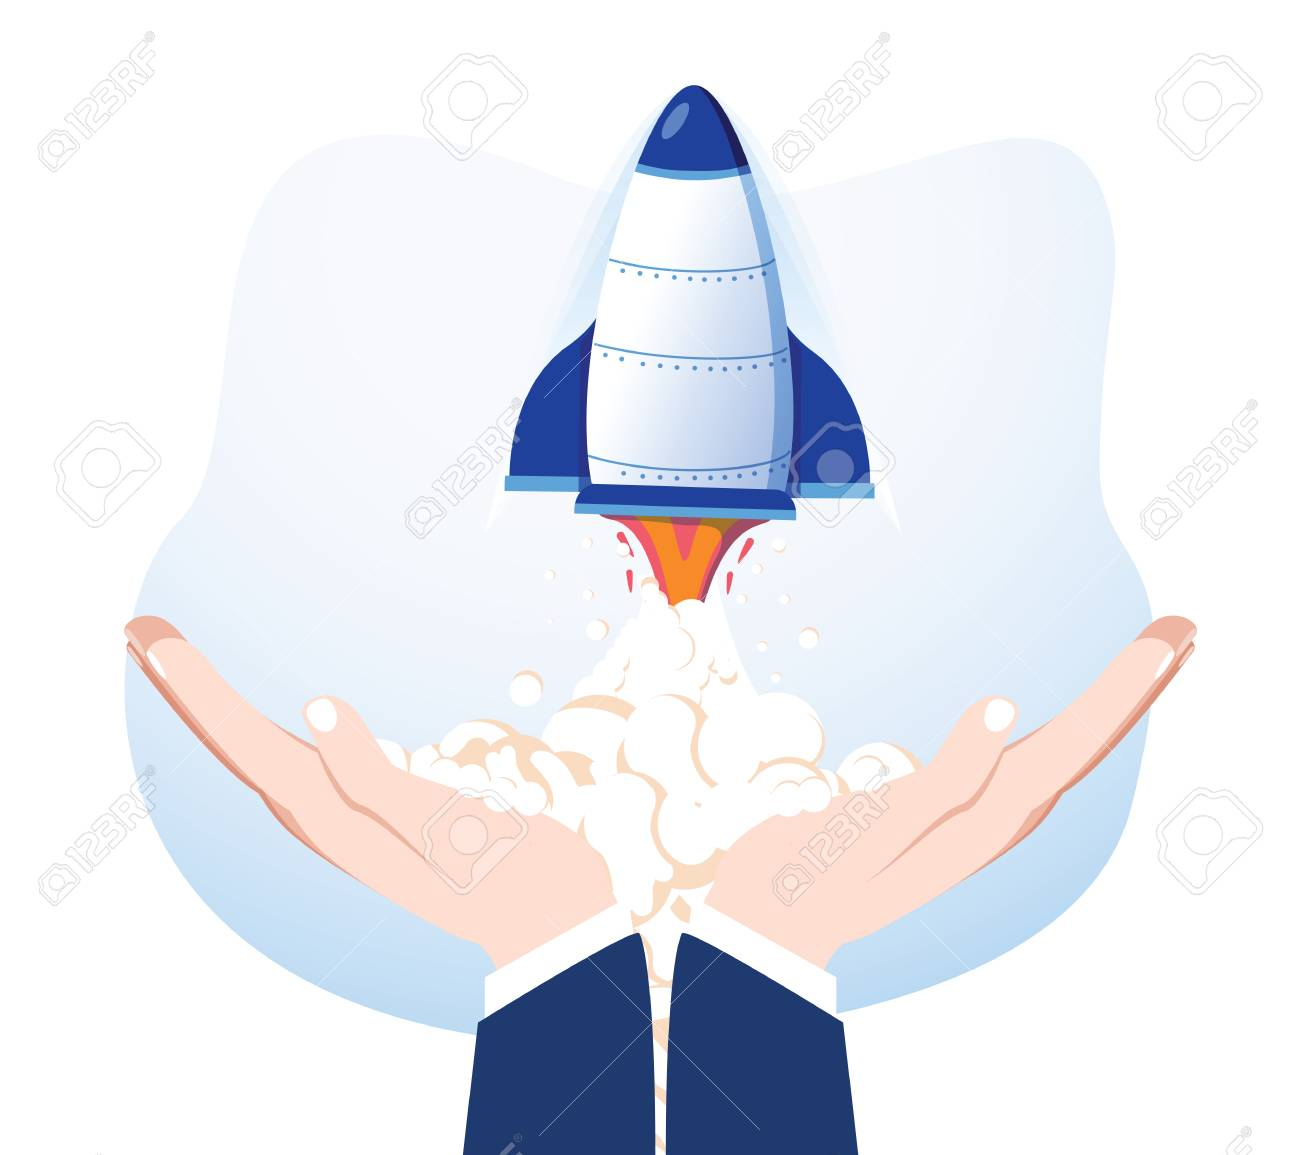 Rocket in hands isolated on background. Launch spaceship. Launching business product, project development. Start up, success concept. Vector flat cartoon design. Conceptual creative business success - 127716645